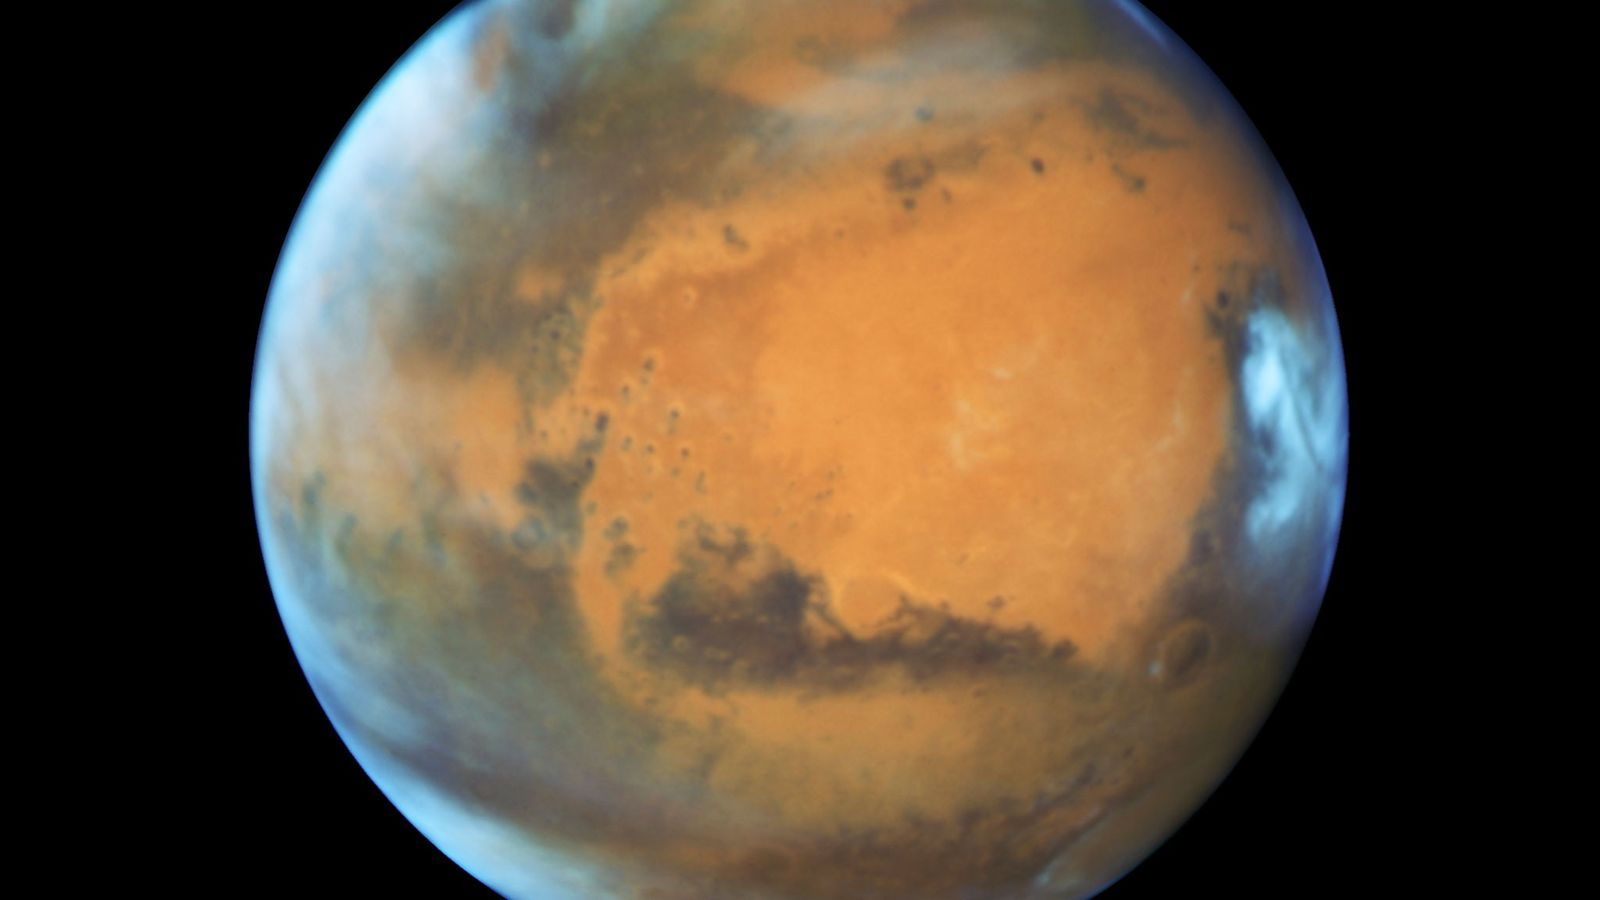 Surface features on Mars come into focus in this Hubble Space Telescope picture taken during a ...